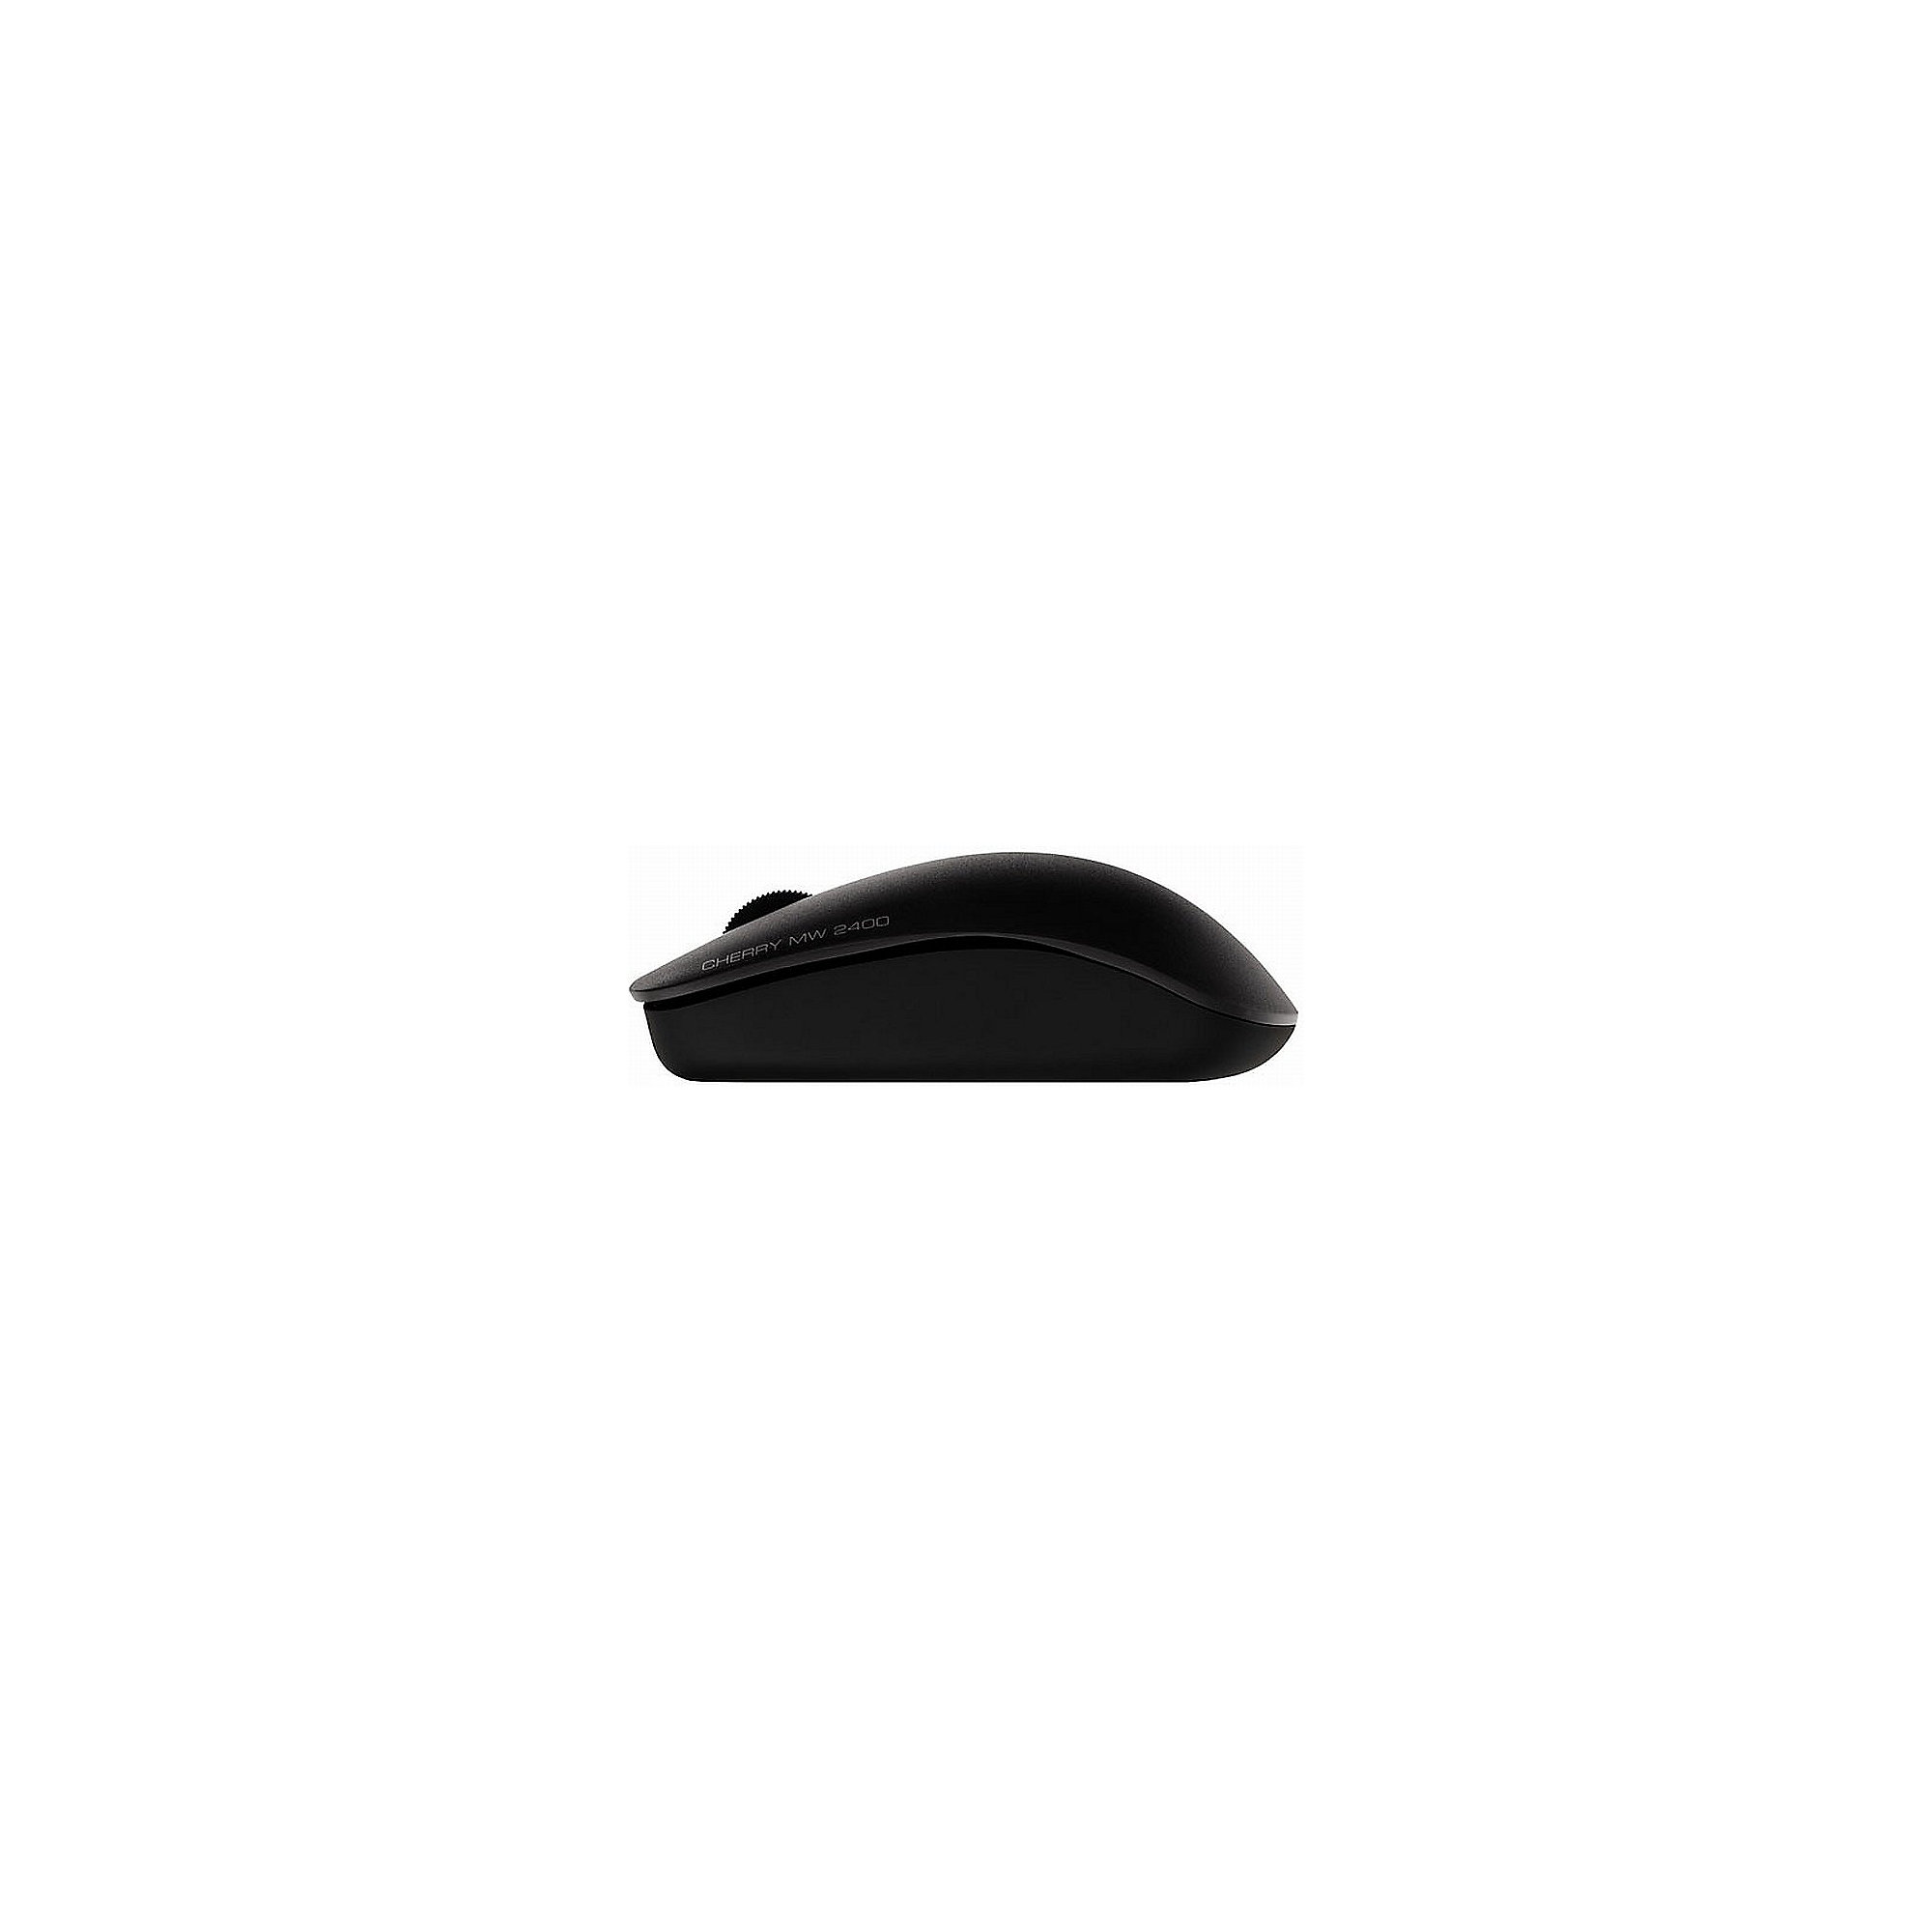 Cherry MW 2400 Wireless Mouse schwarz